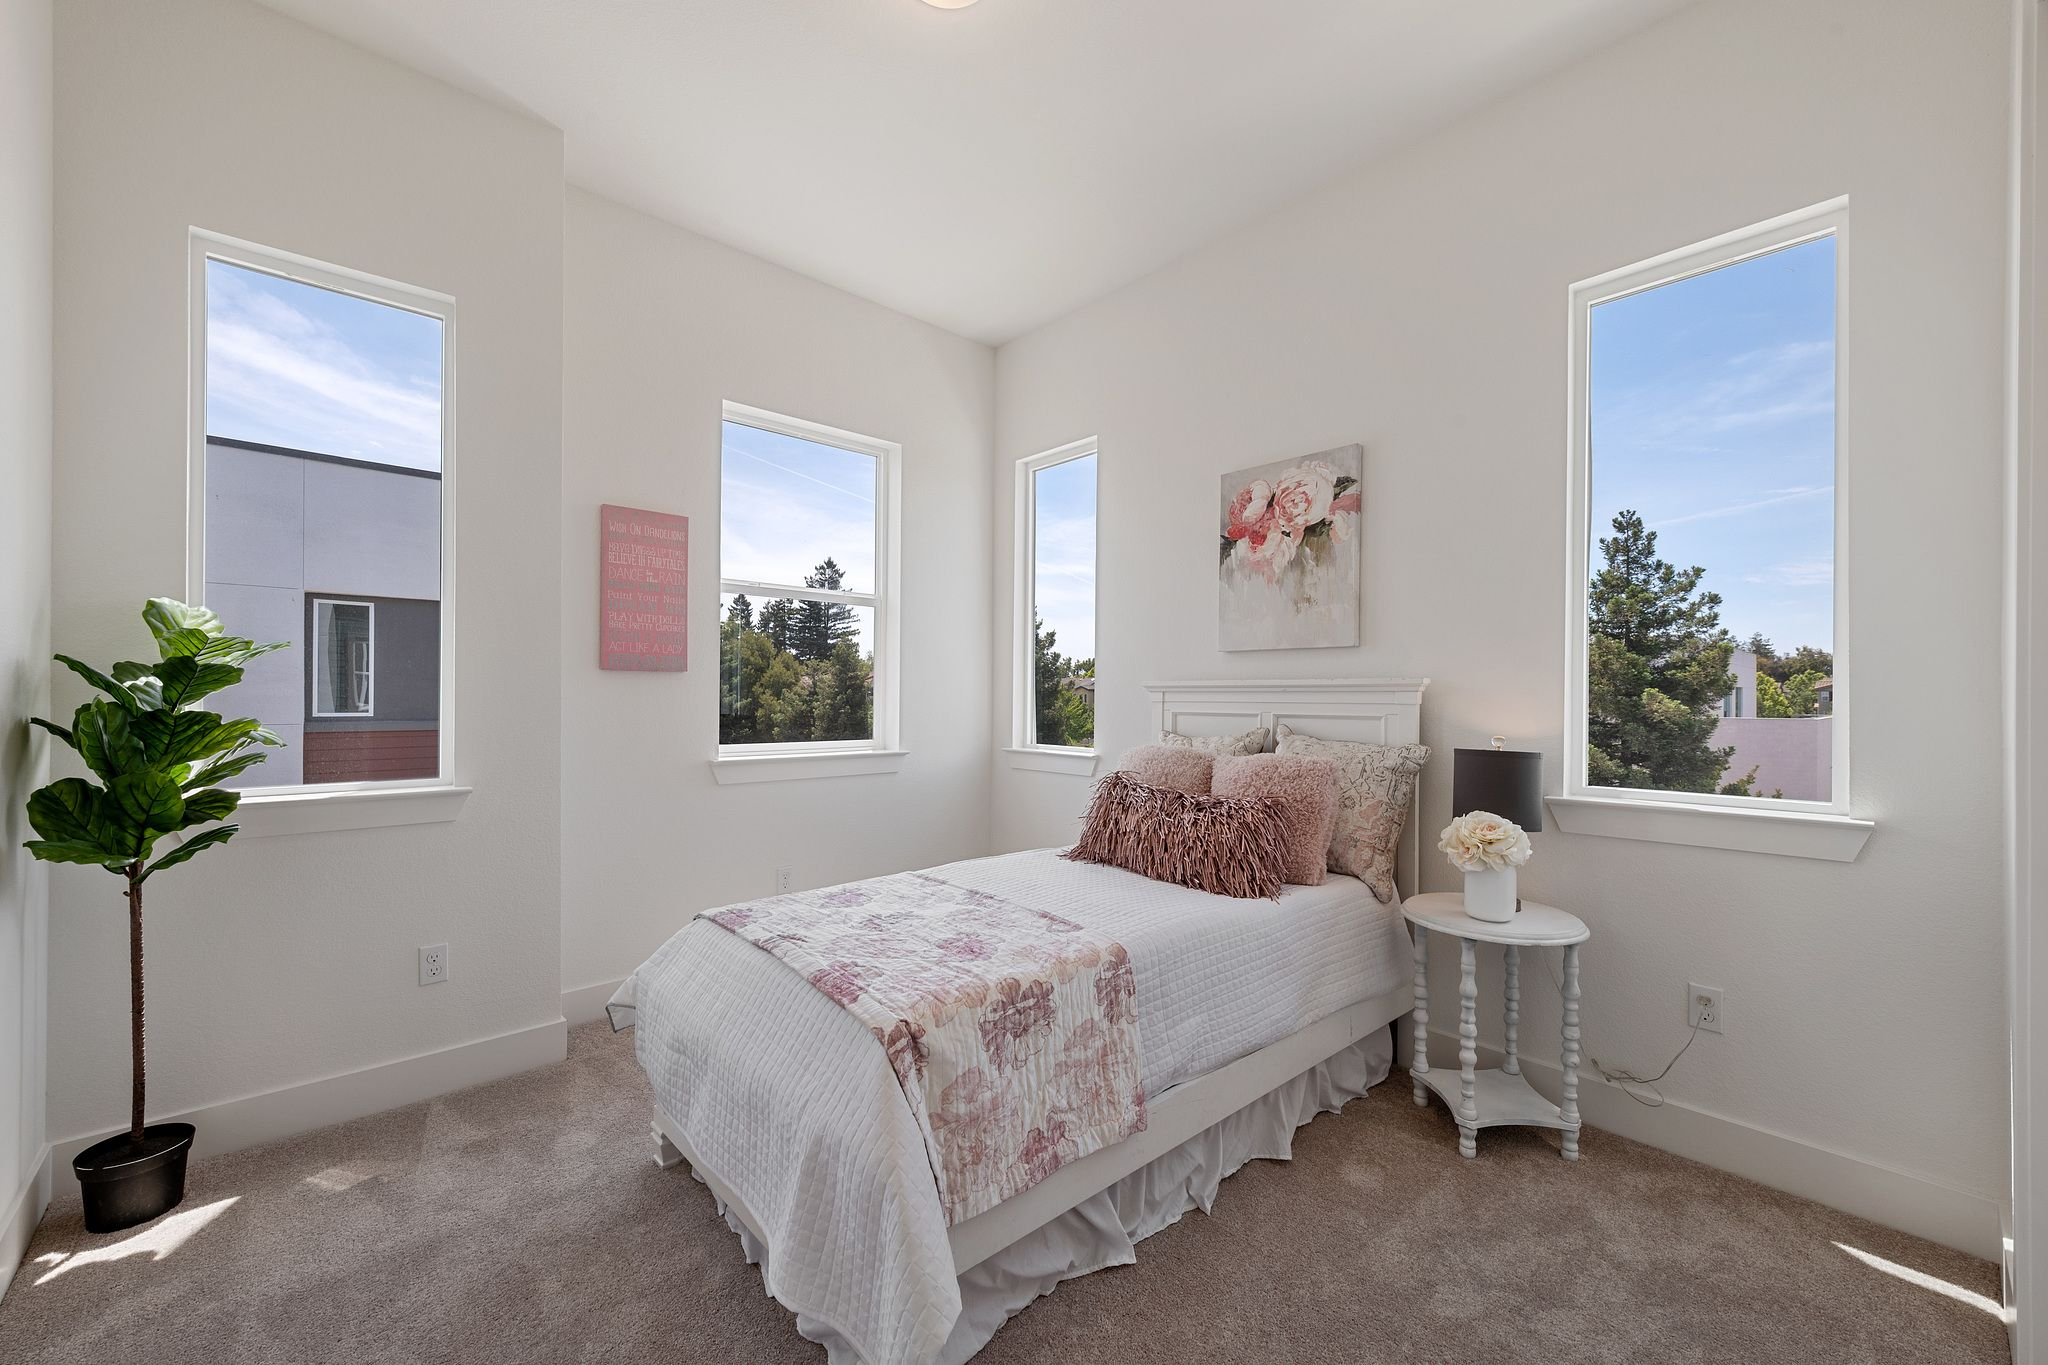 Bedroom featured in the Plan 3 By Pan Cal in San Jose, CA